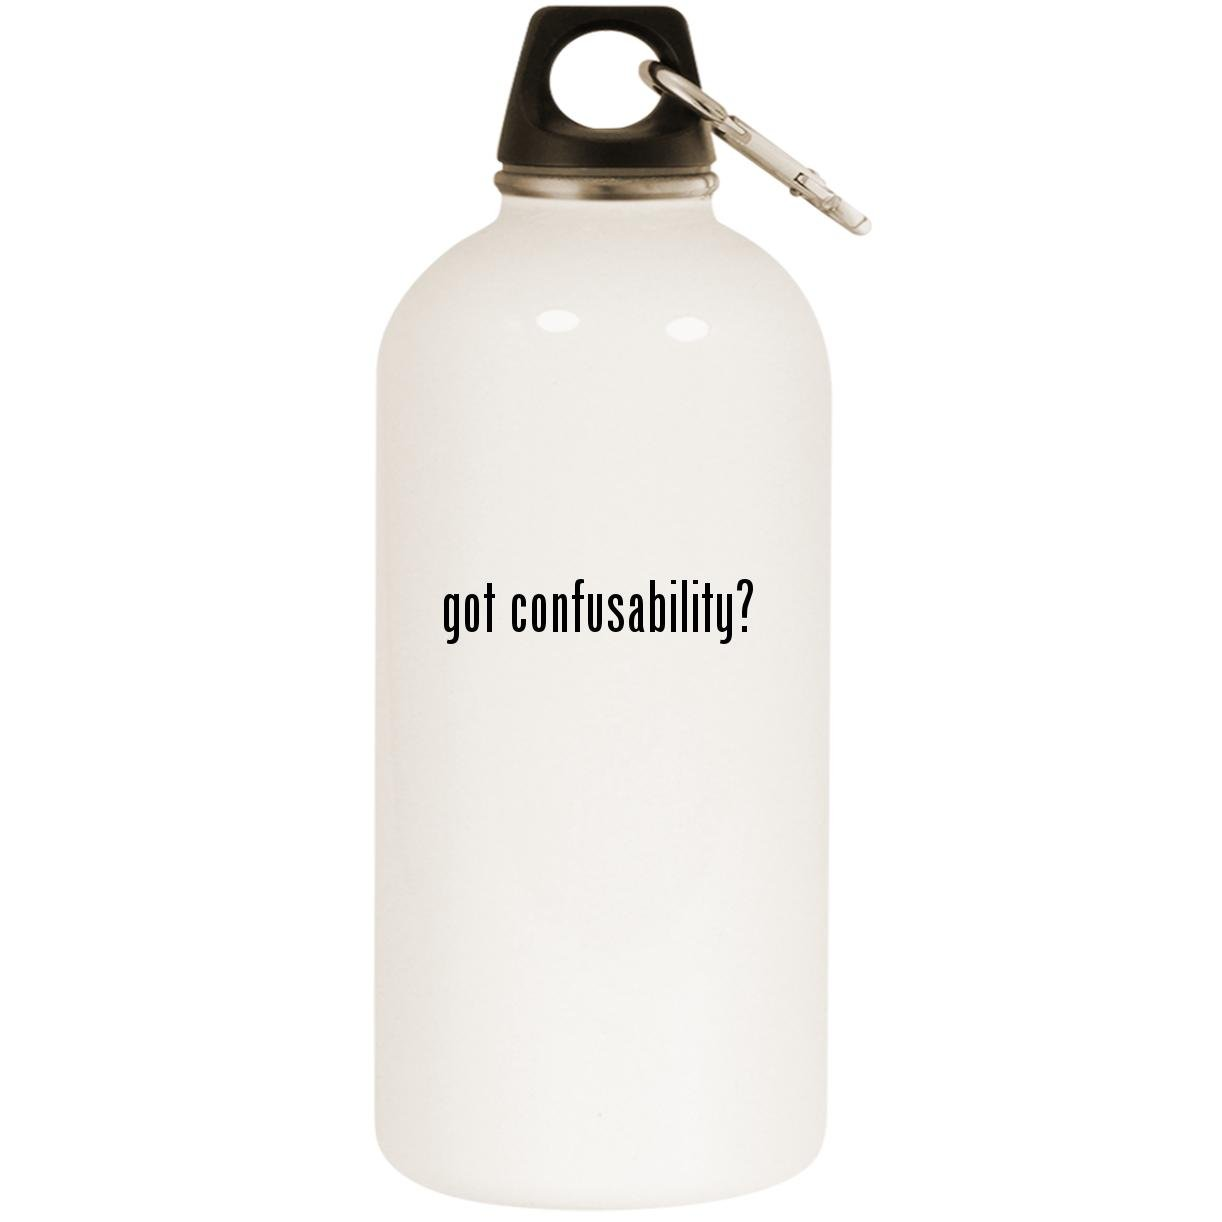 got confusability? - White 20oz Stainless Steel Water Bottle with Carabiner